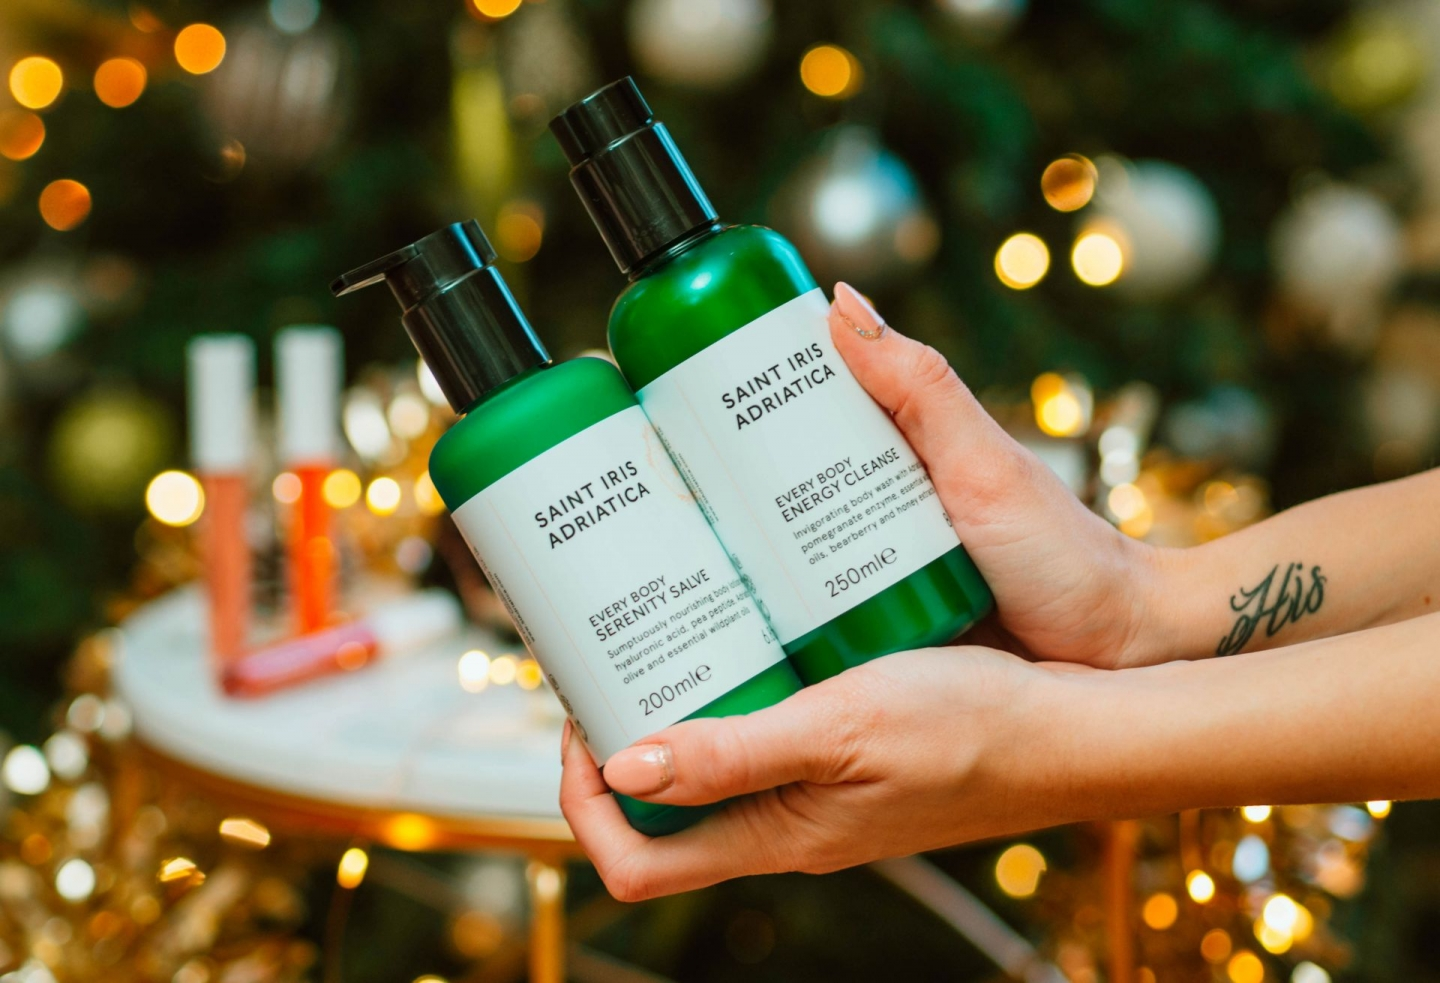 Saint Iris Adriatica - clean beauty brands to check out